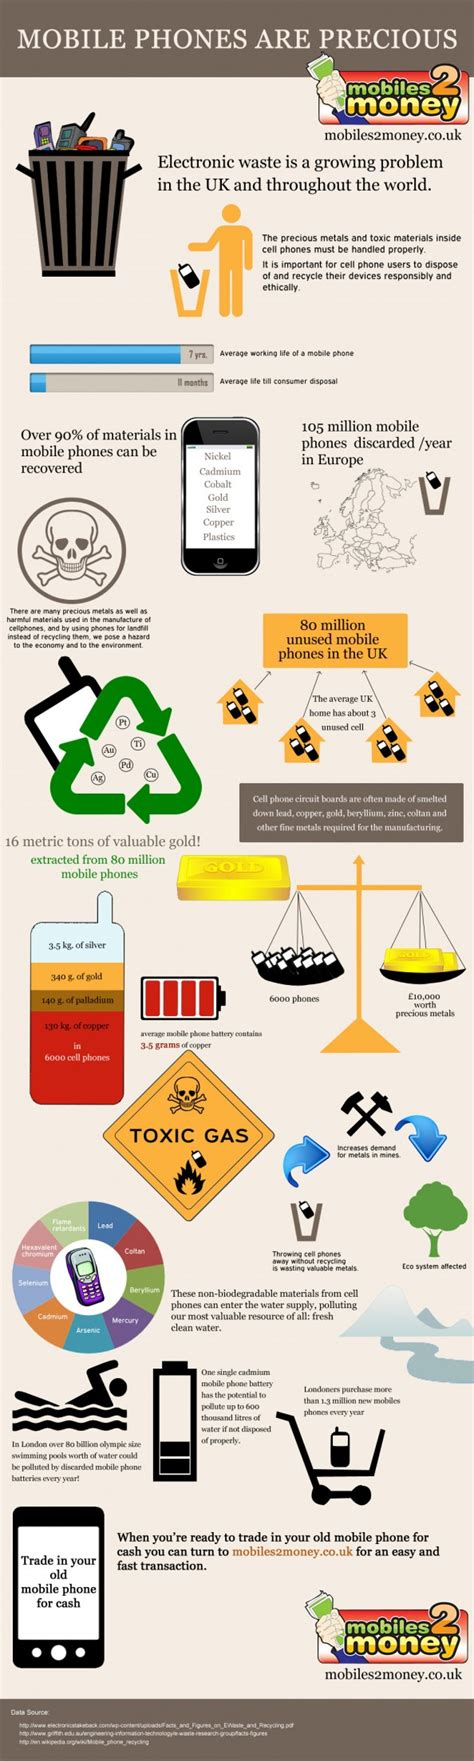 mobile recycle mobile phone recycling facts infographic for more